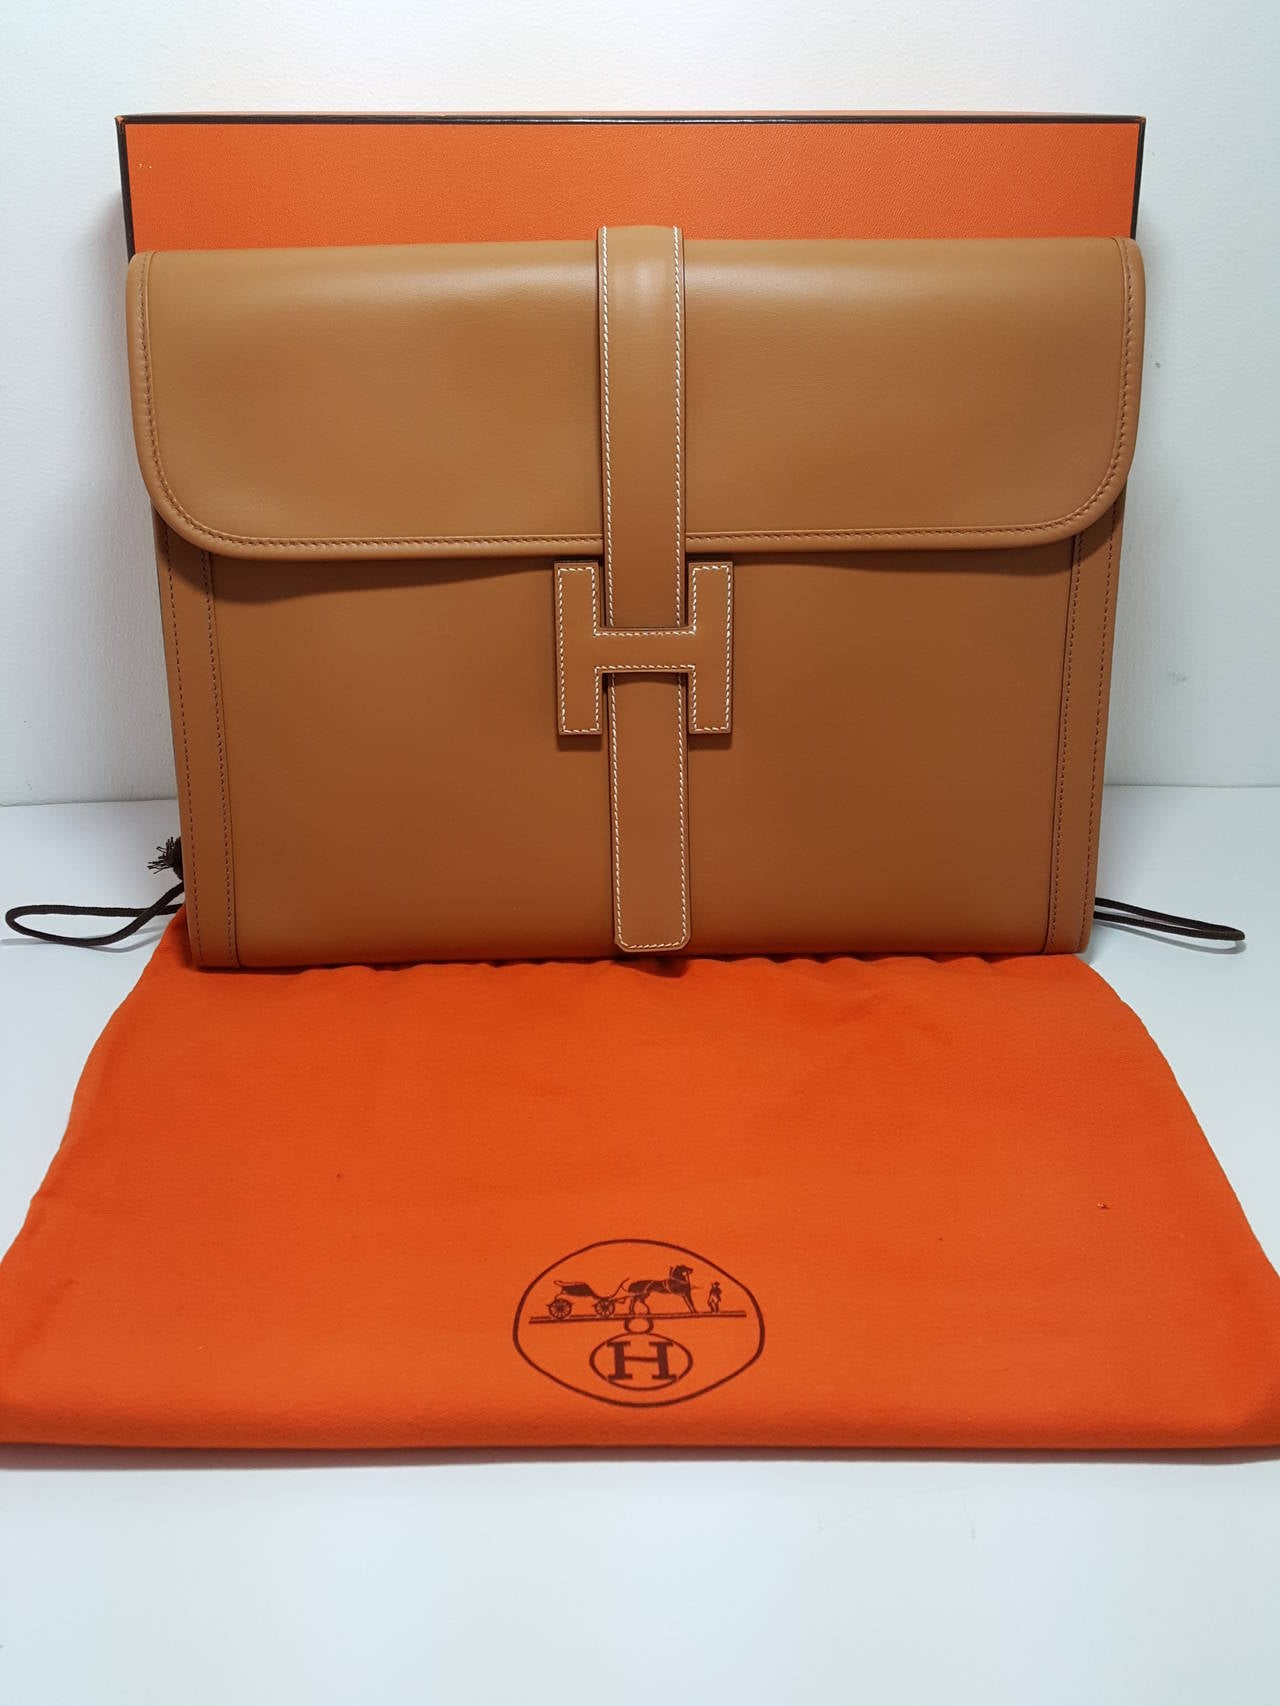 HERMES Large Golden Jige Clutch in perfect Condition. 5